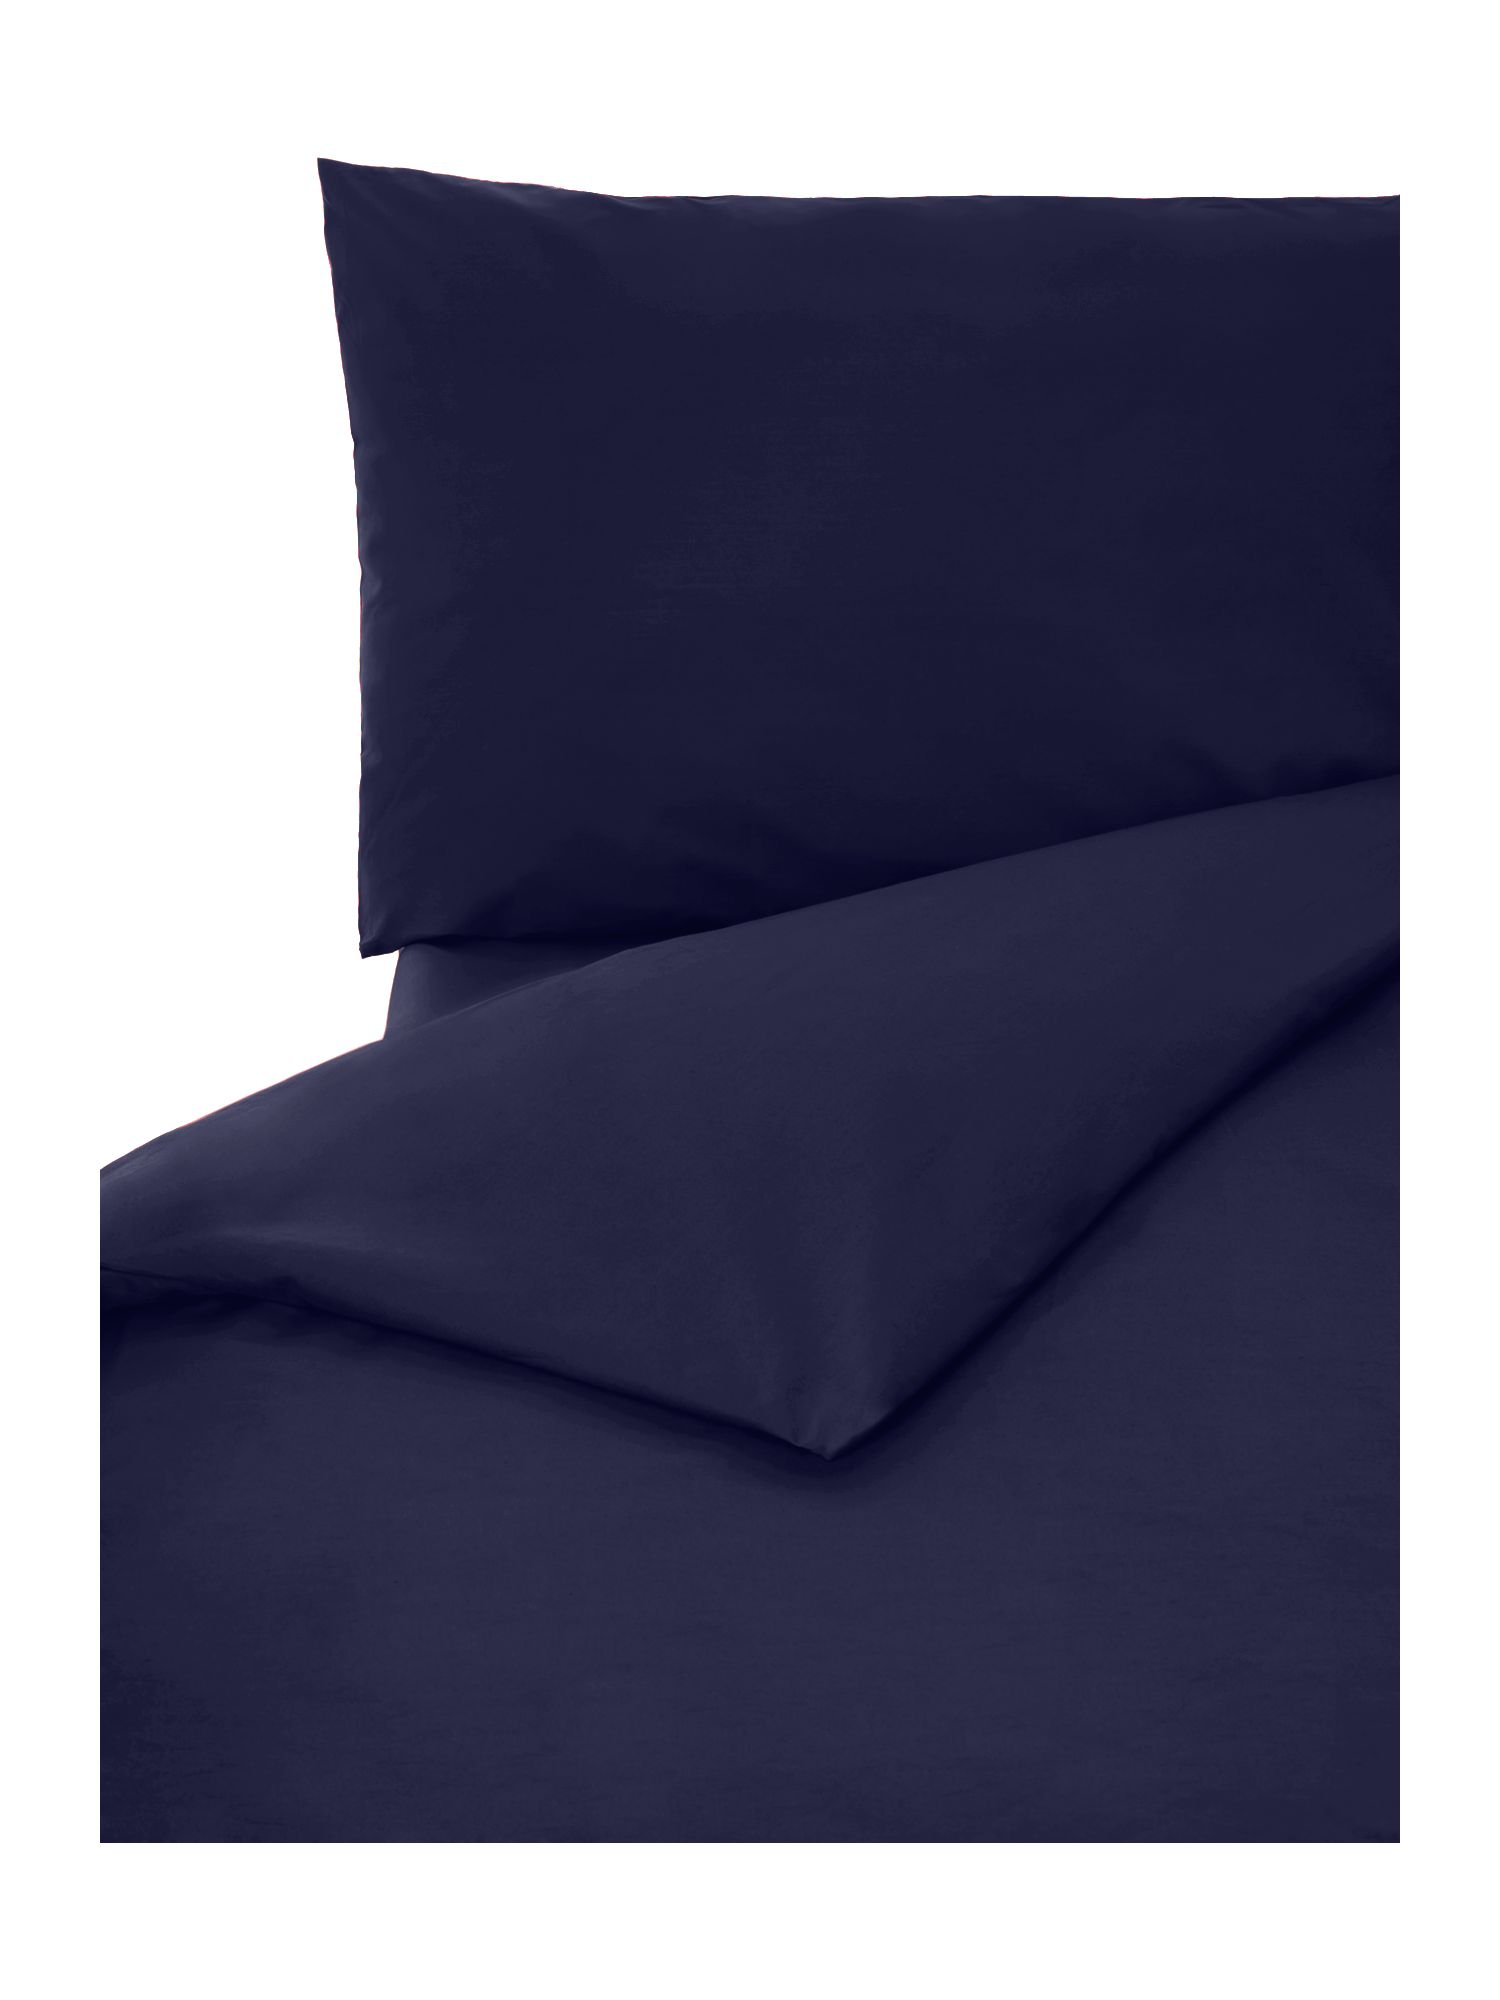 100% cotton king duvet cover french navy